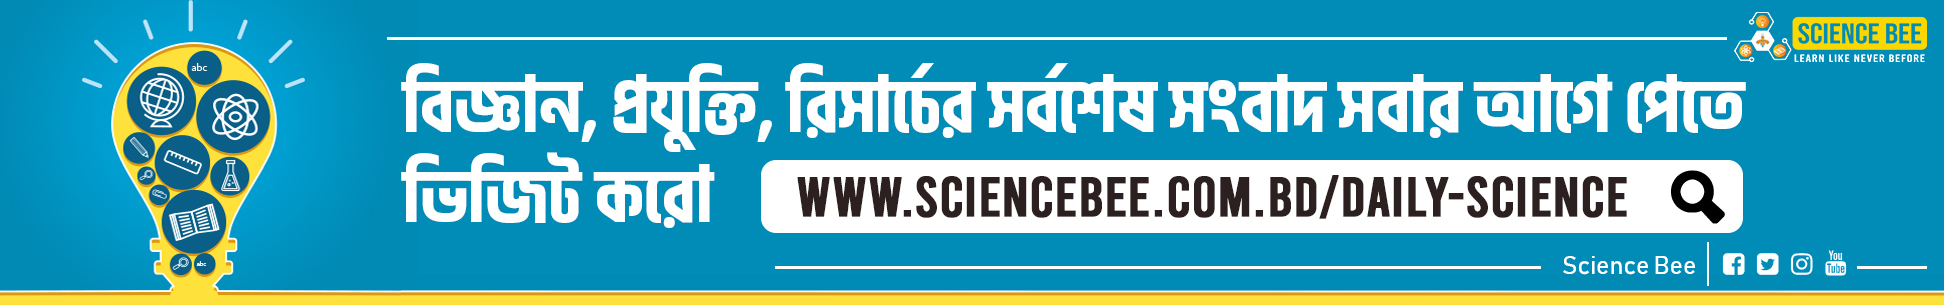 Science Bee Daily Science